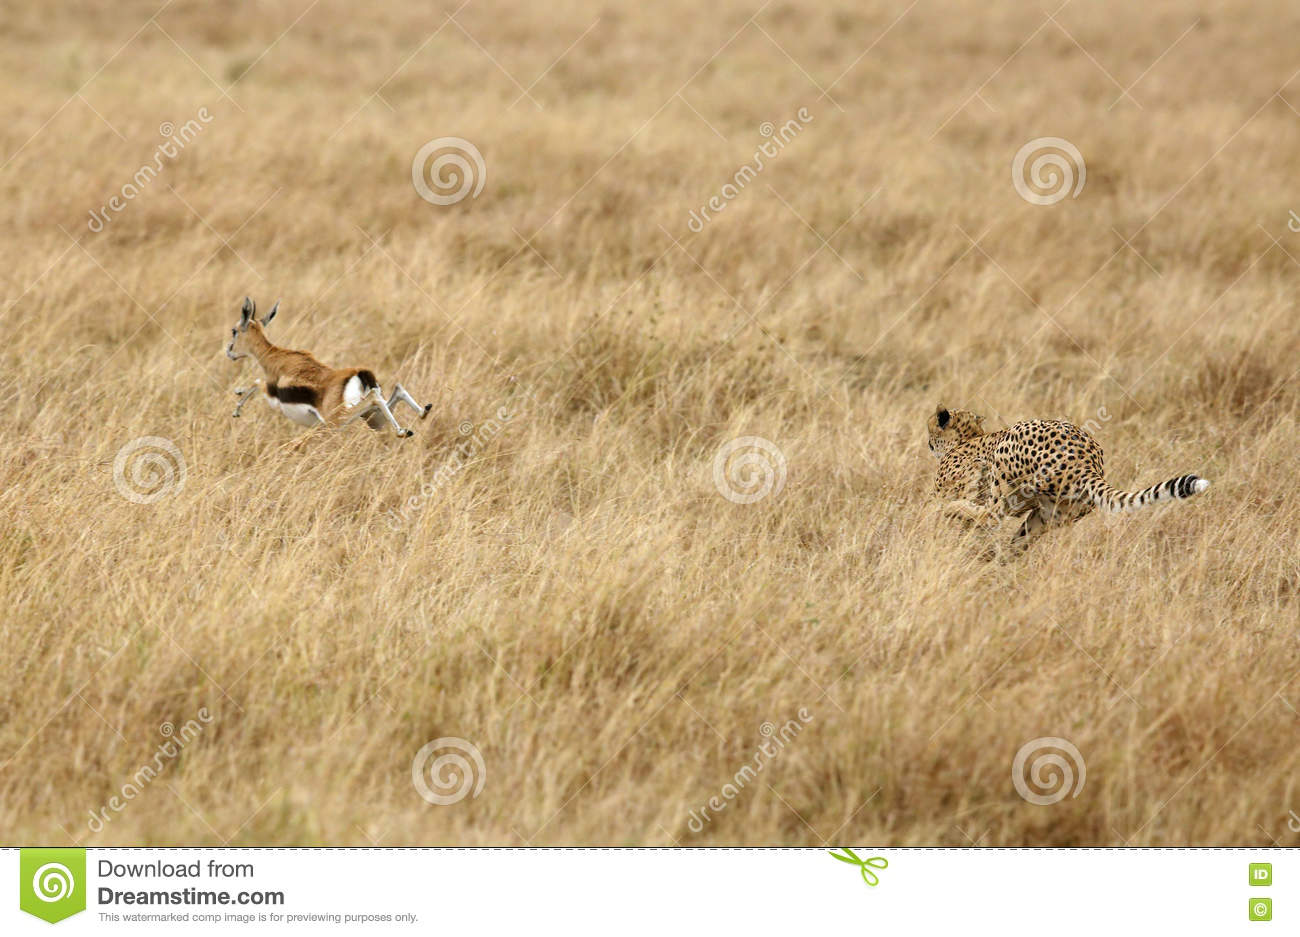 500+ cheetah pictures [hd] | download free images on unsplash.